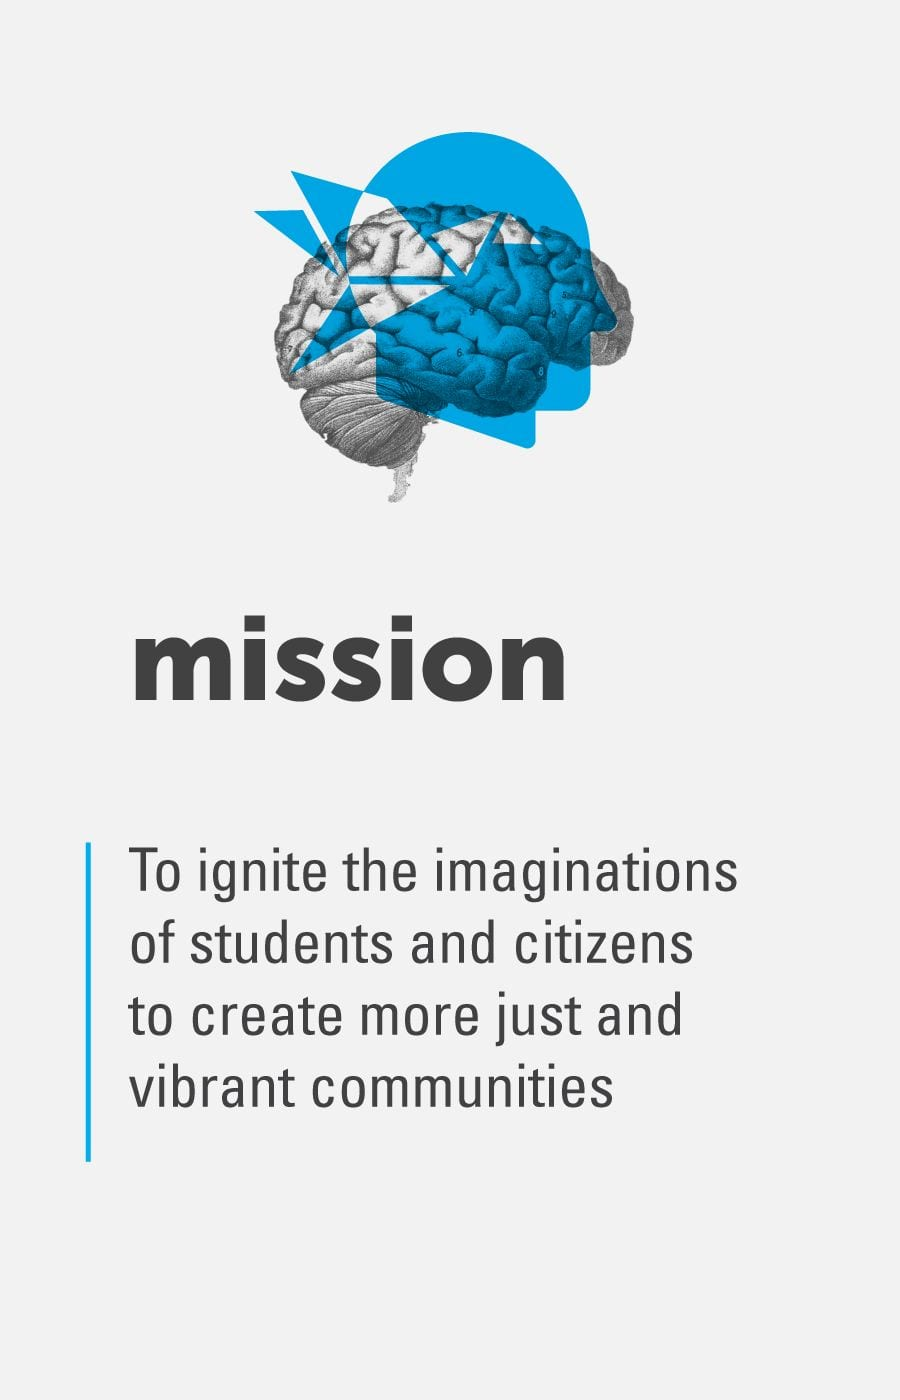 To ignite the imaginations of students and citizens to create more just and vibrant communities